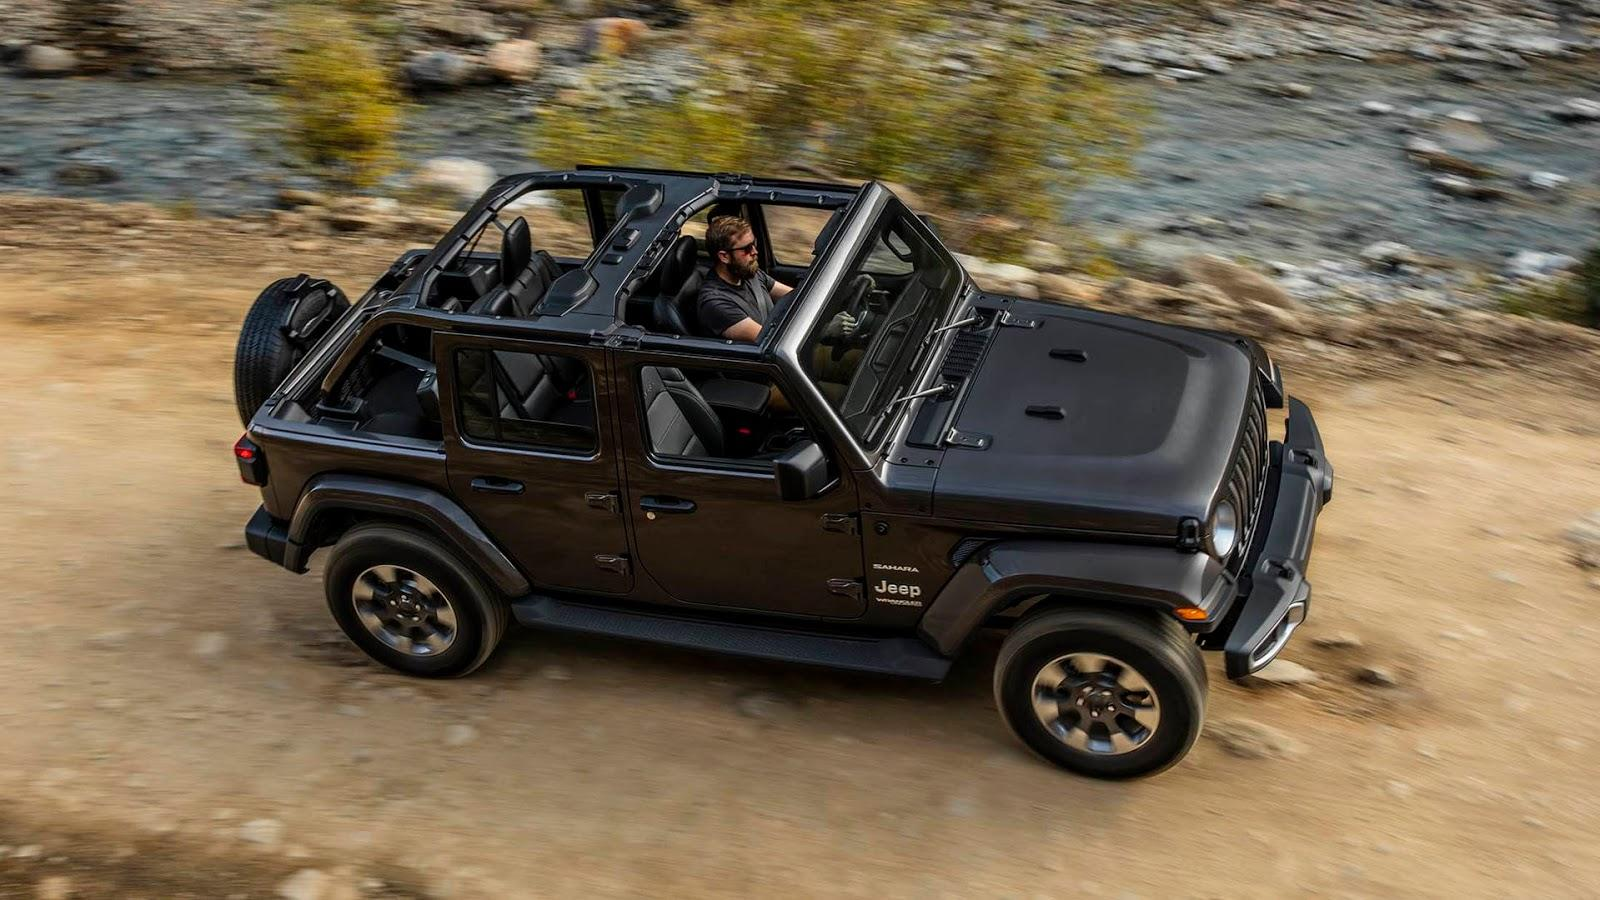 jeep wrangler 2018 novit auto e nuovi modelli autopareri. Black Bedroom Furniture Sets. Home Design Ideas